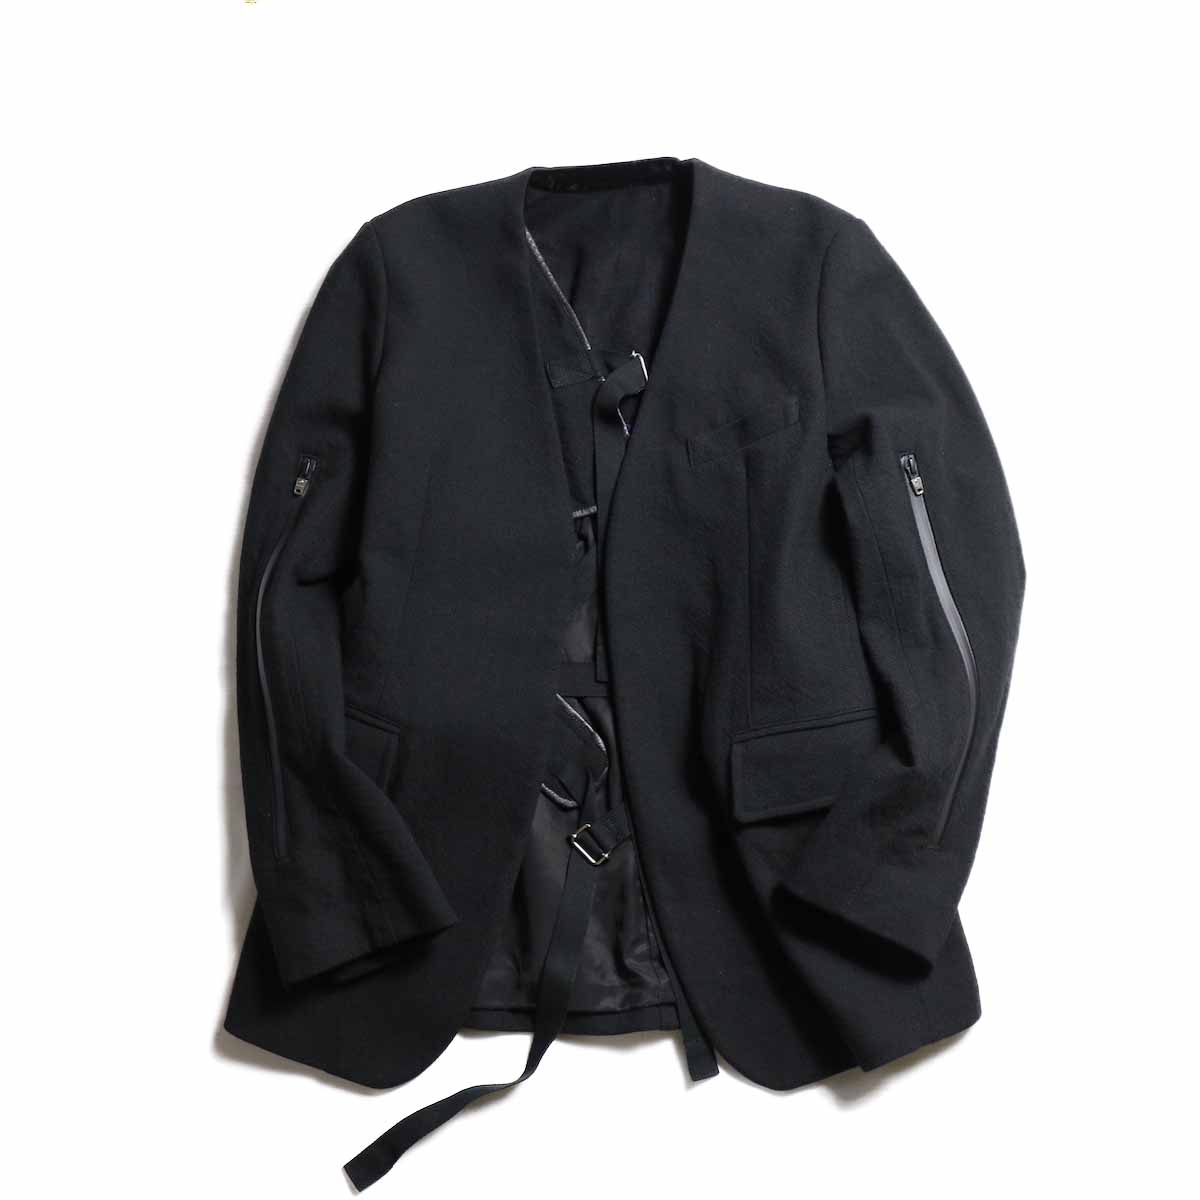 TheSoloist / sj.0003aAW18 collarless jacket.